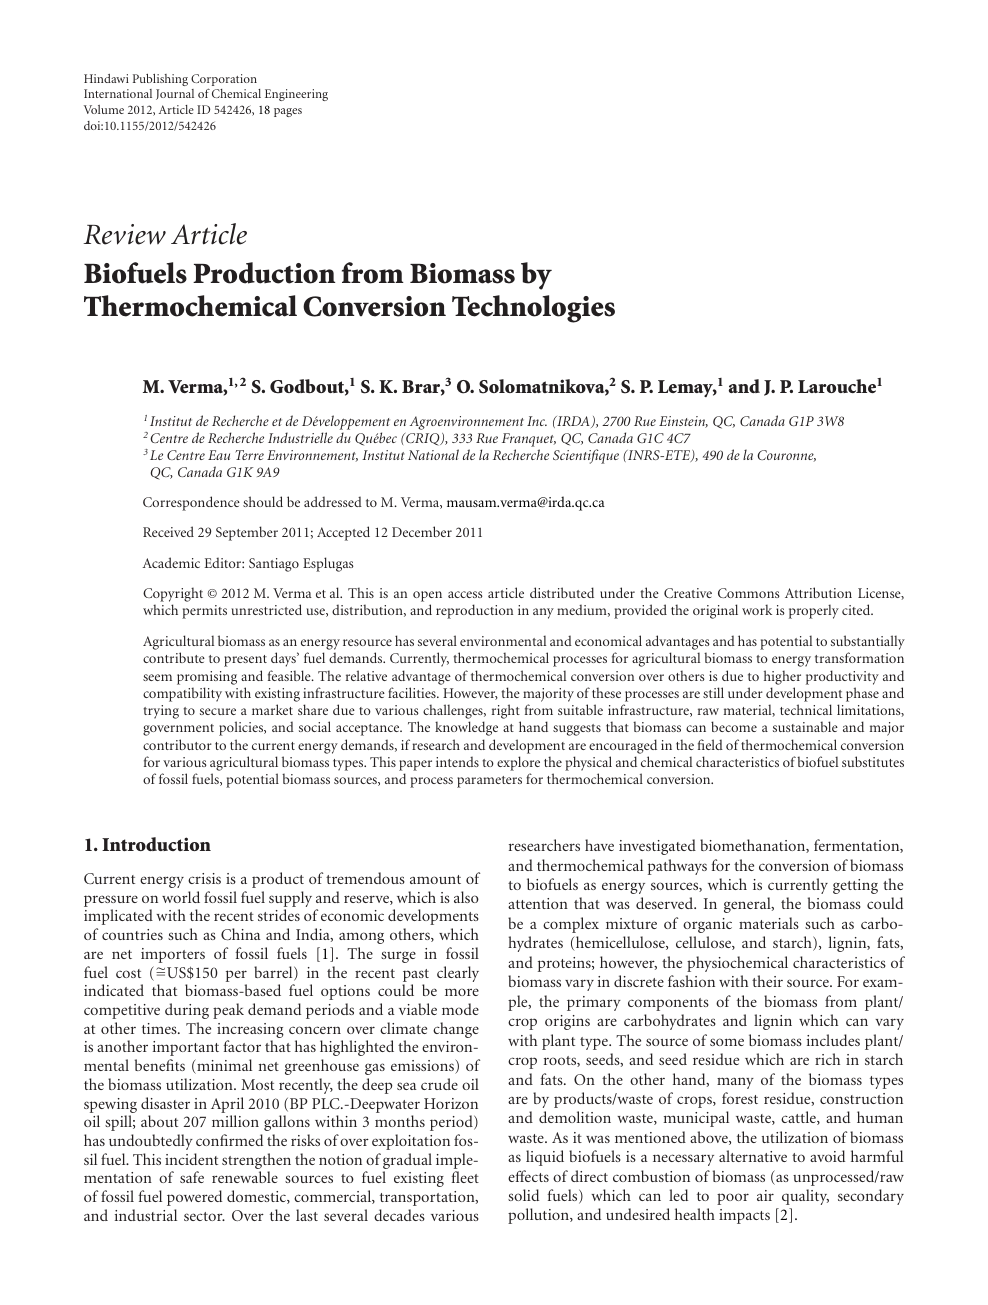 Biofuels Production From Biomass By Thermochemical